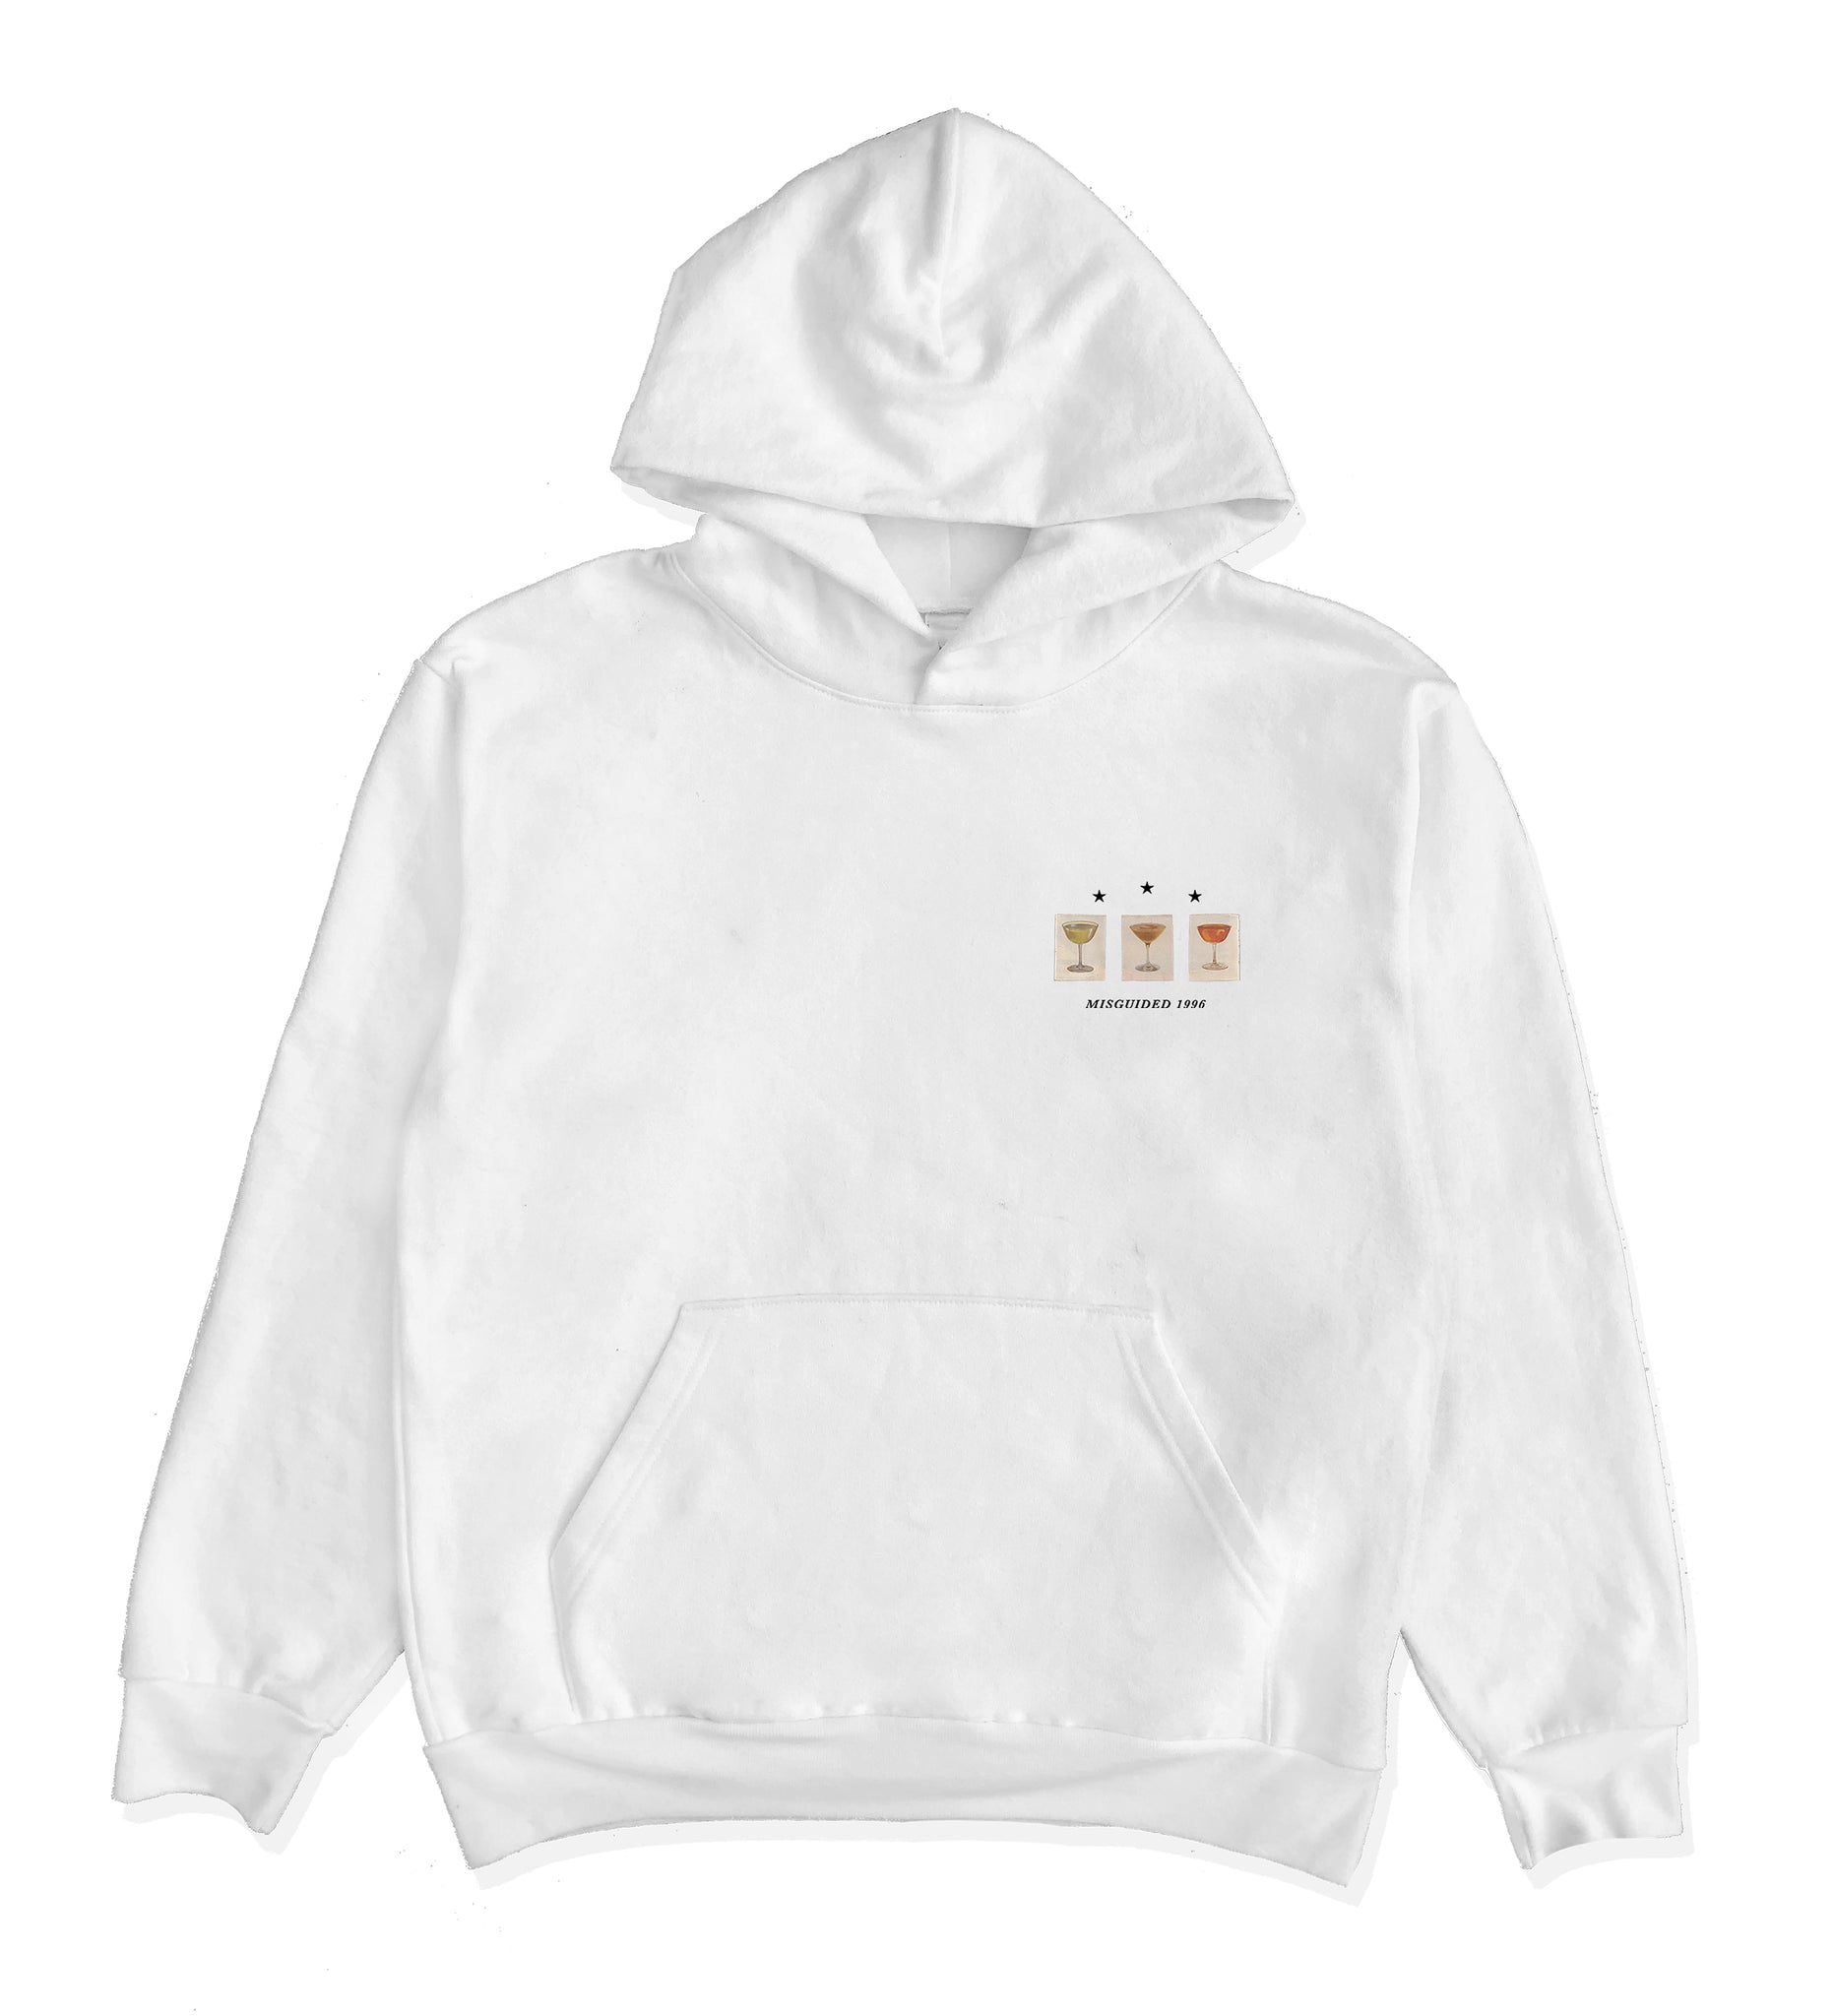 Martini Logo Hooded Sweatshirt